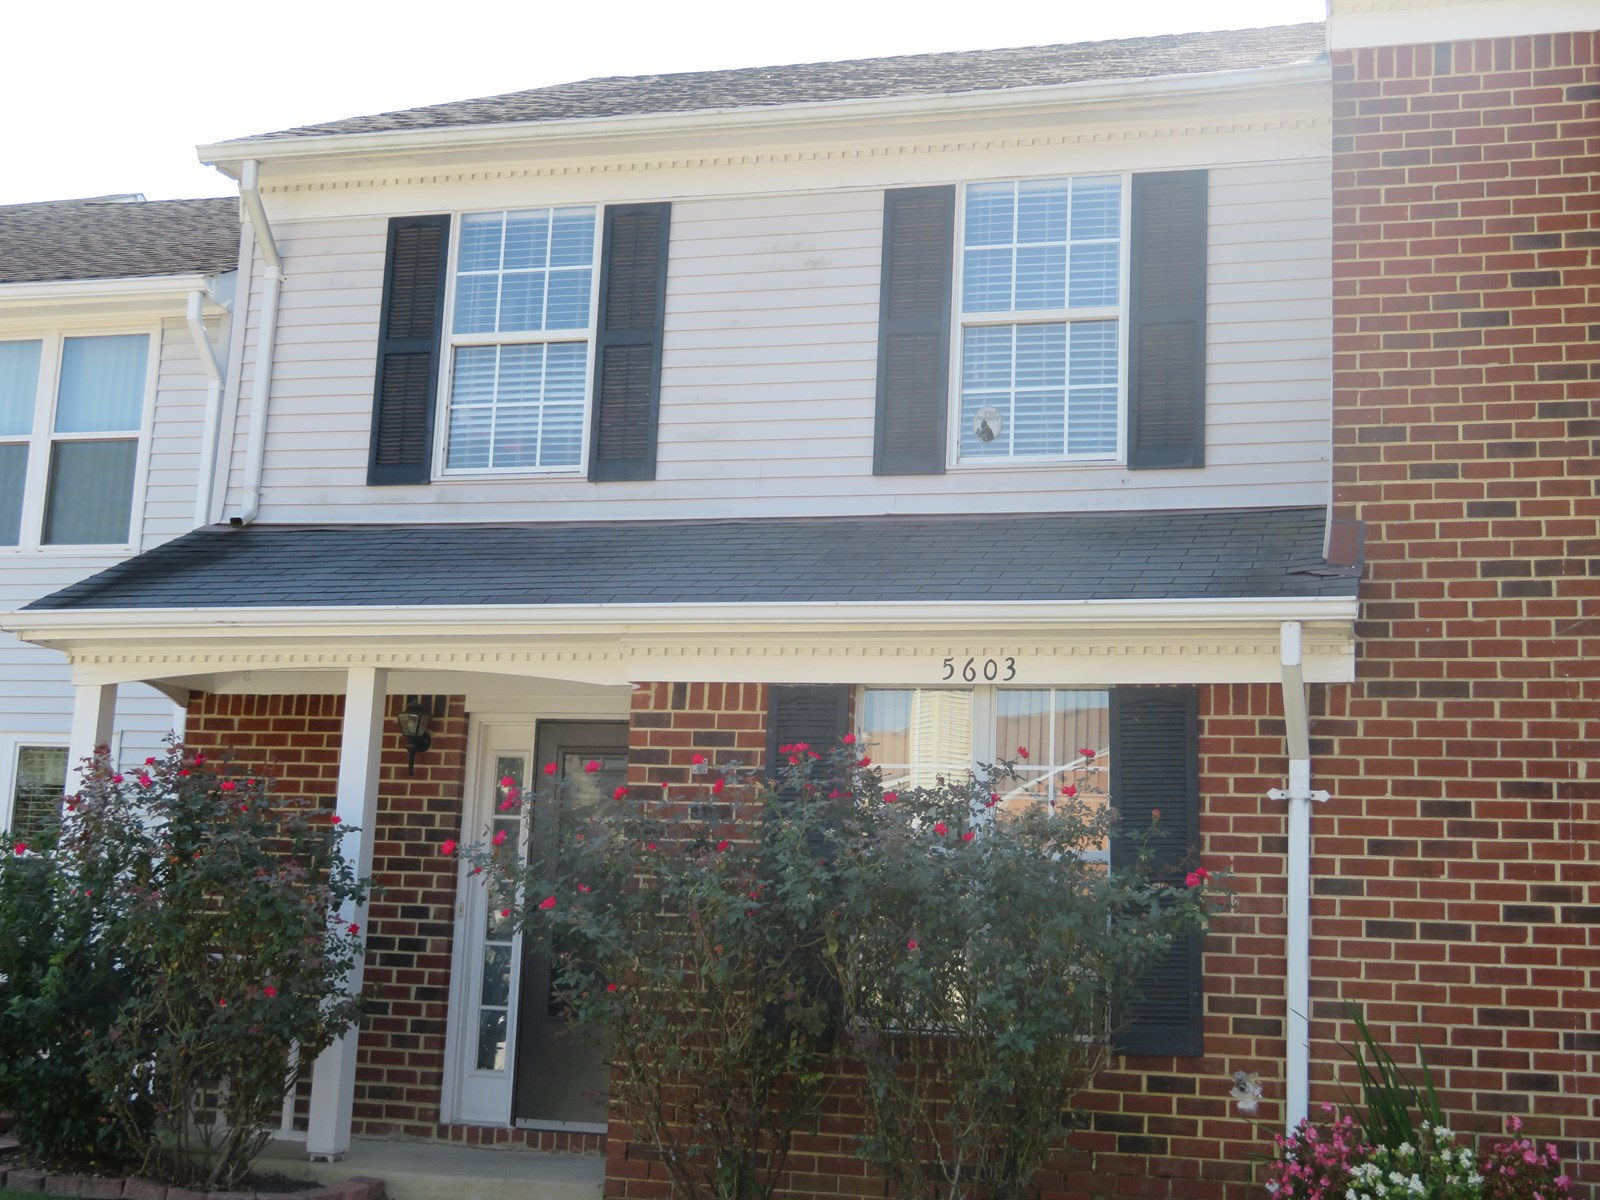 Virginia Beach Townehome near interstate, and schools